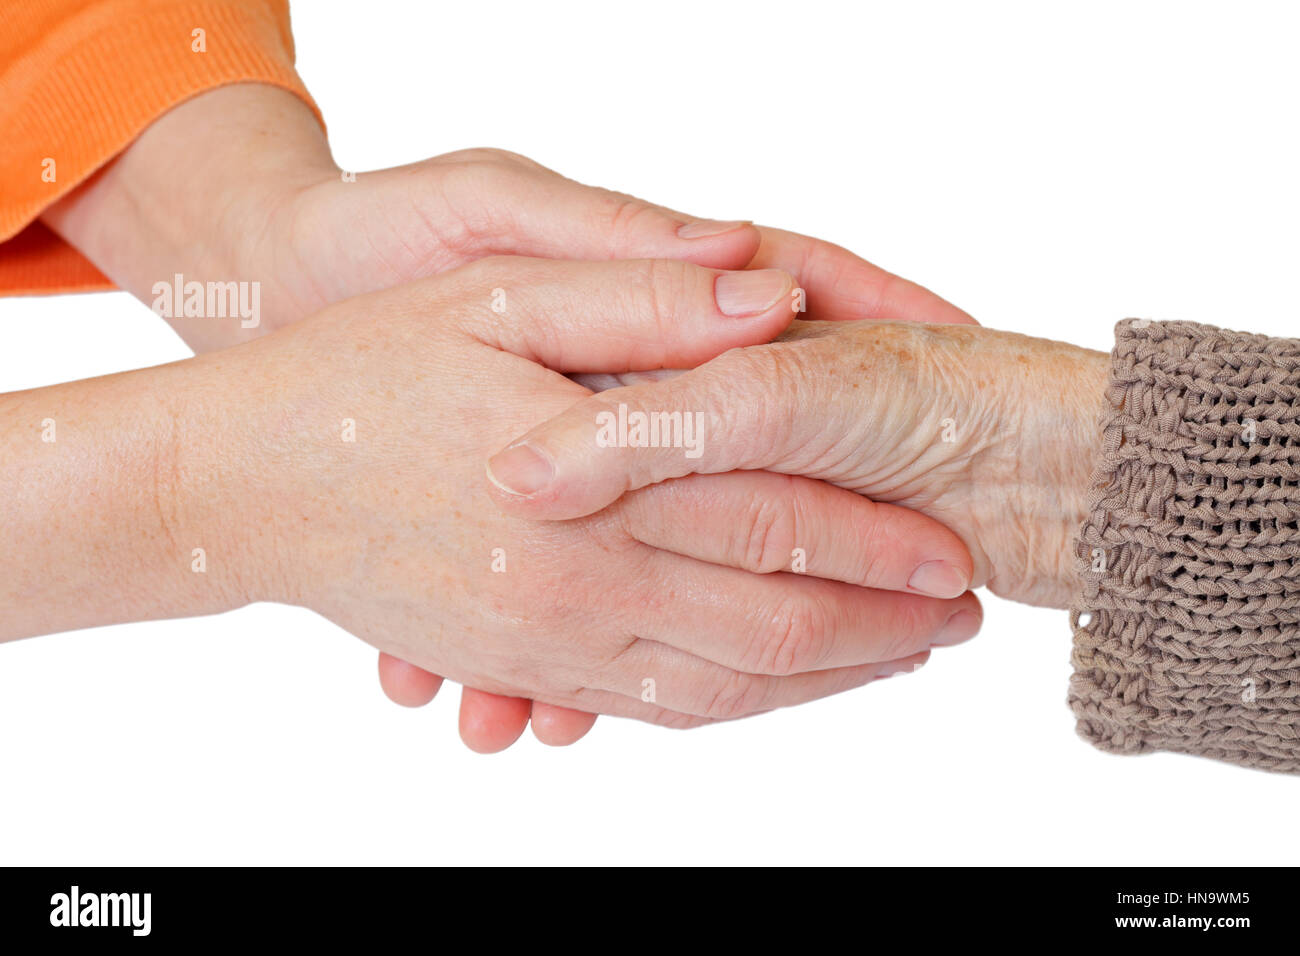 Woman holding elderly hands on isolated background - Stock Image